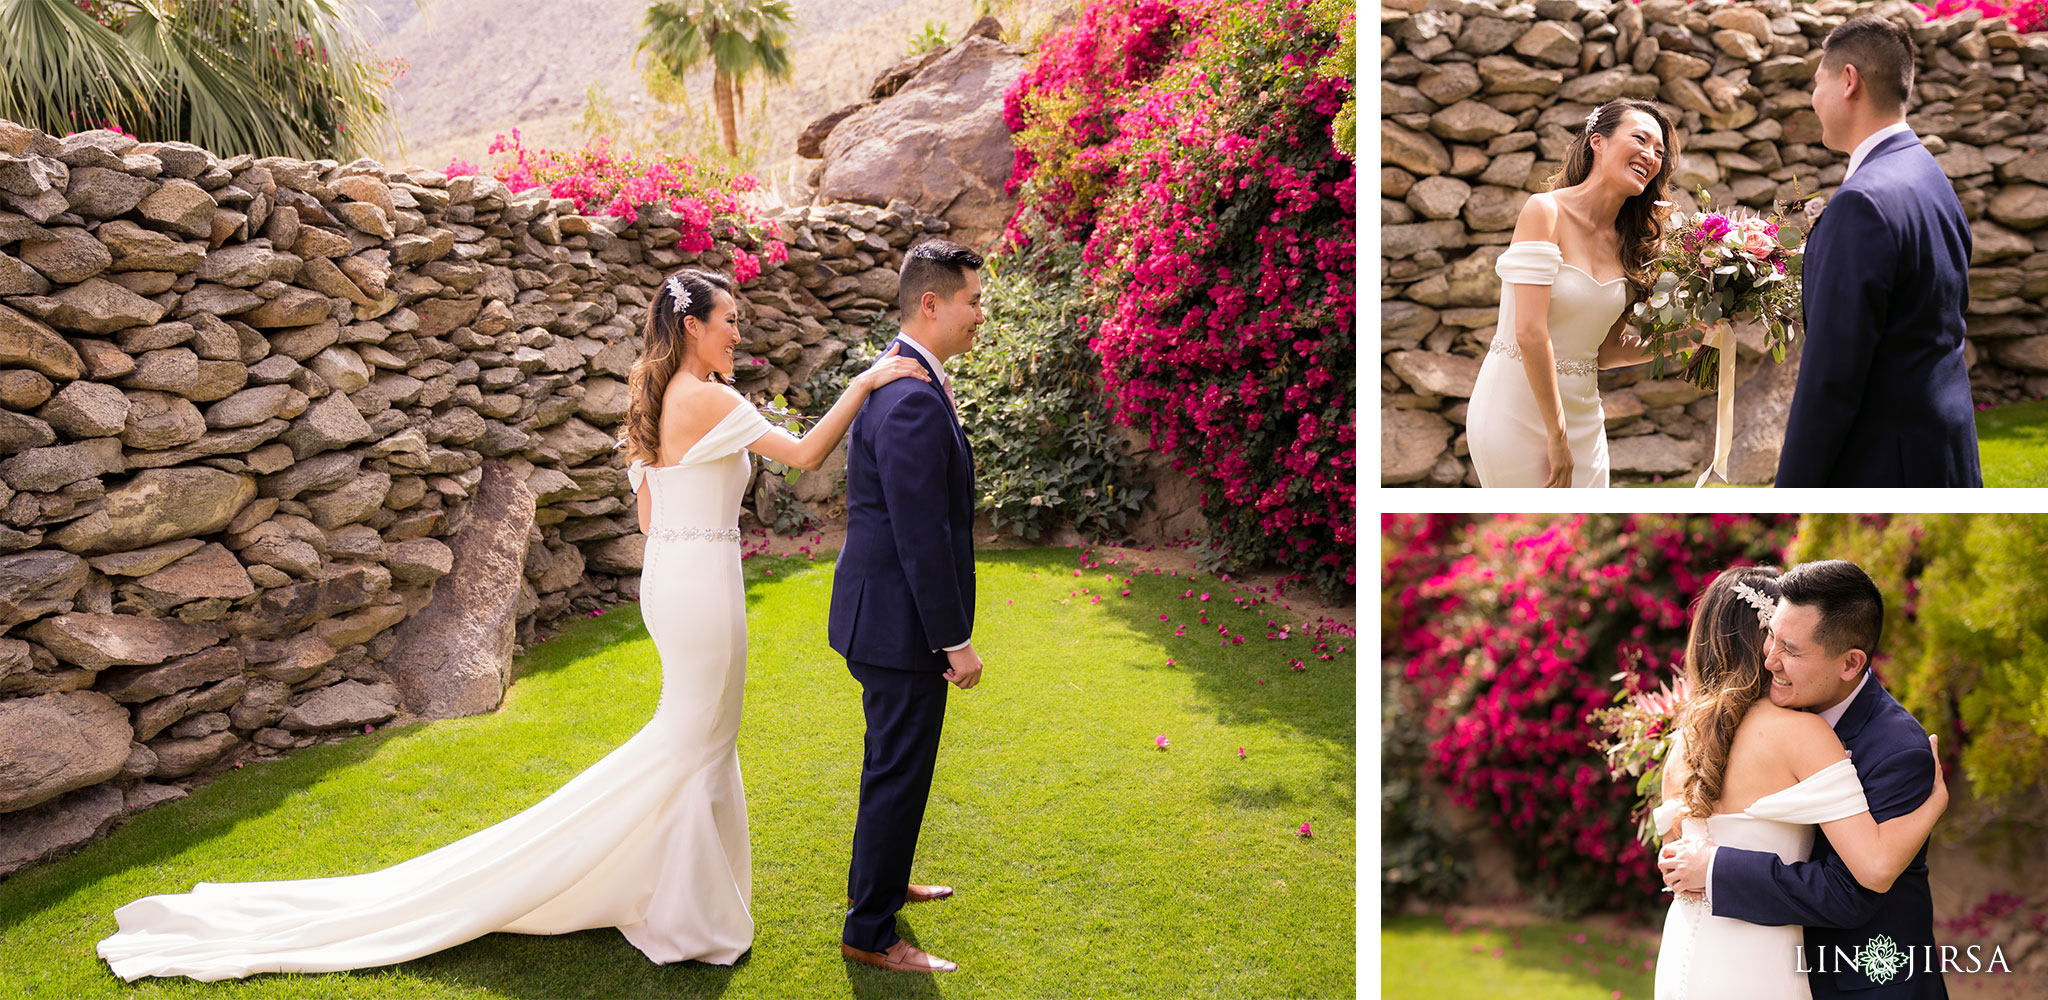 14 odonnell house palm springs first look wedding photography